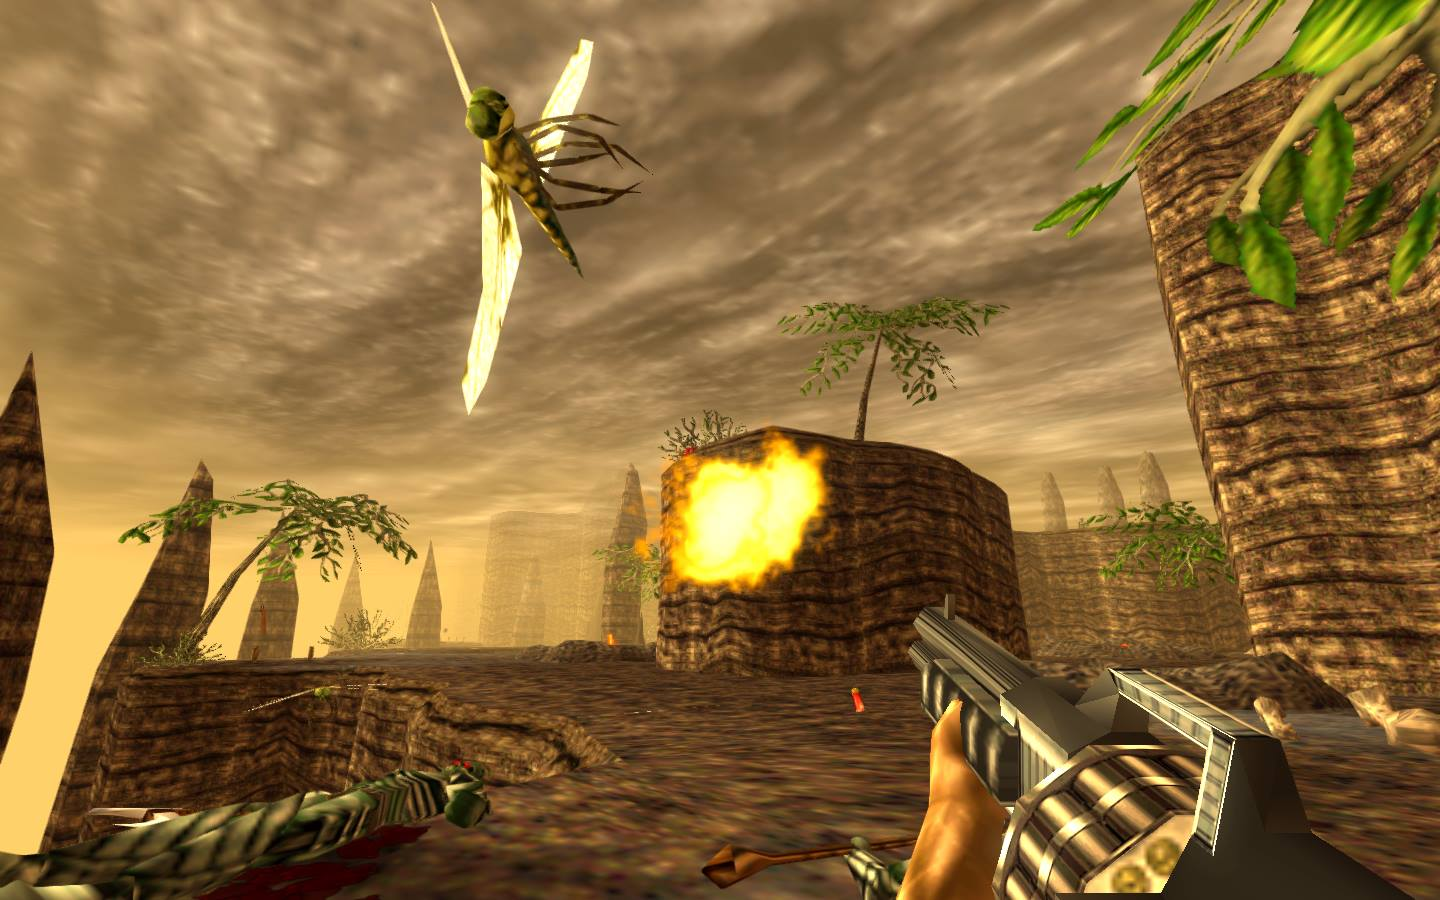 Quit bugging Turok, he has a destiny to fulfill!  Image courtesy of Night Dive Studios